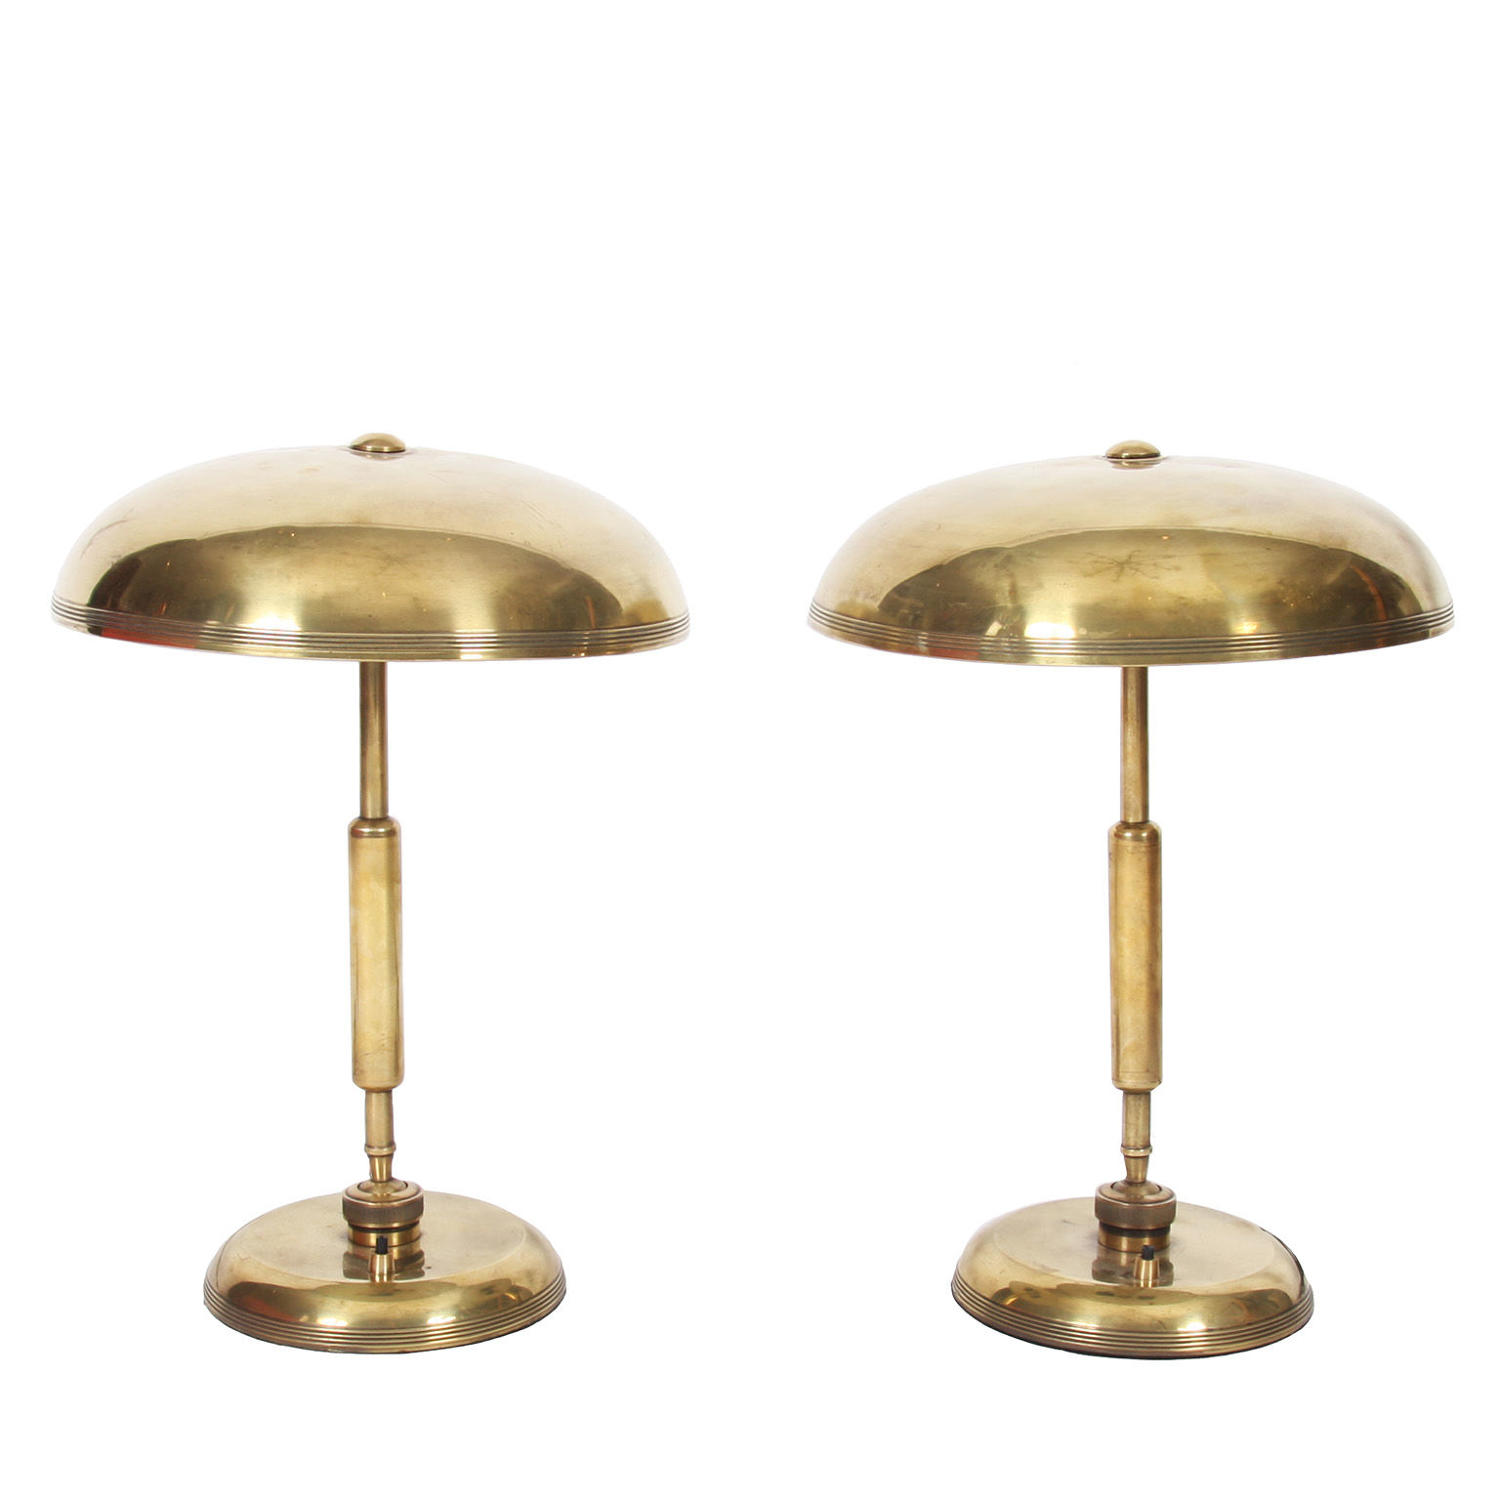 Pair of Brass Adjustable Desk Lamps